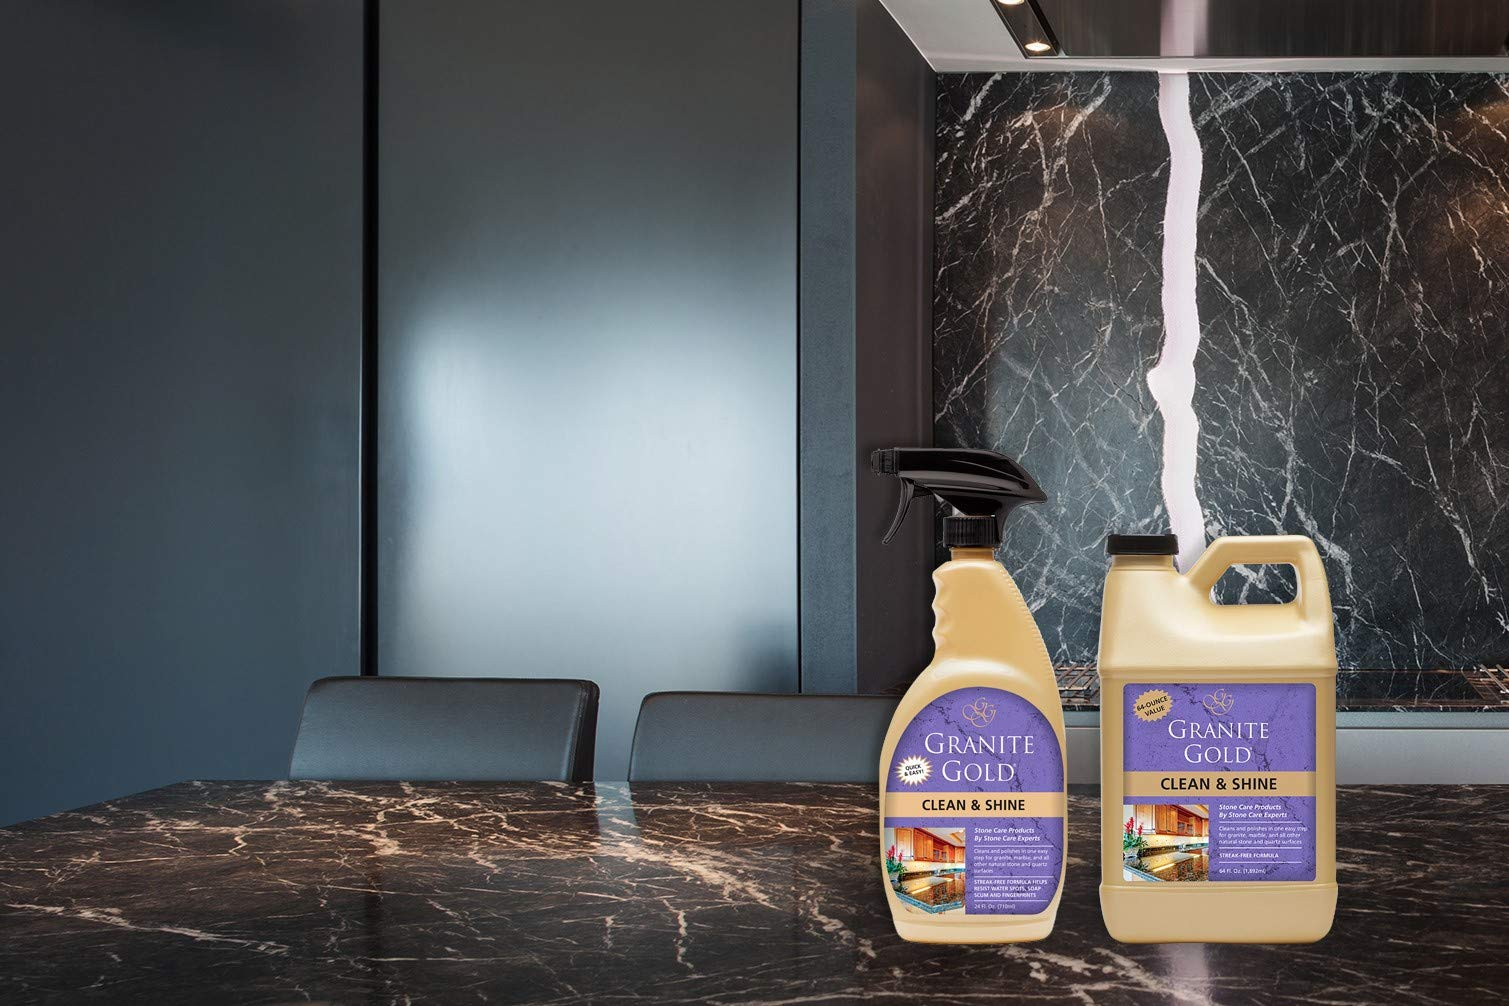 Granite Gold Clean and Shine Spray and Refill Value Pack - Polishes and Deep Cleans Natural Stone Surfaces, Made in The USA by Granite Gold (Image #2)